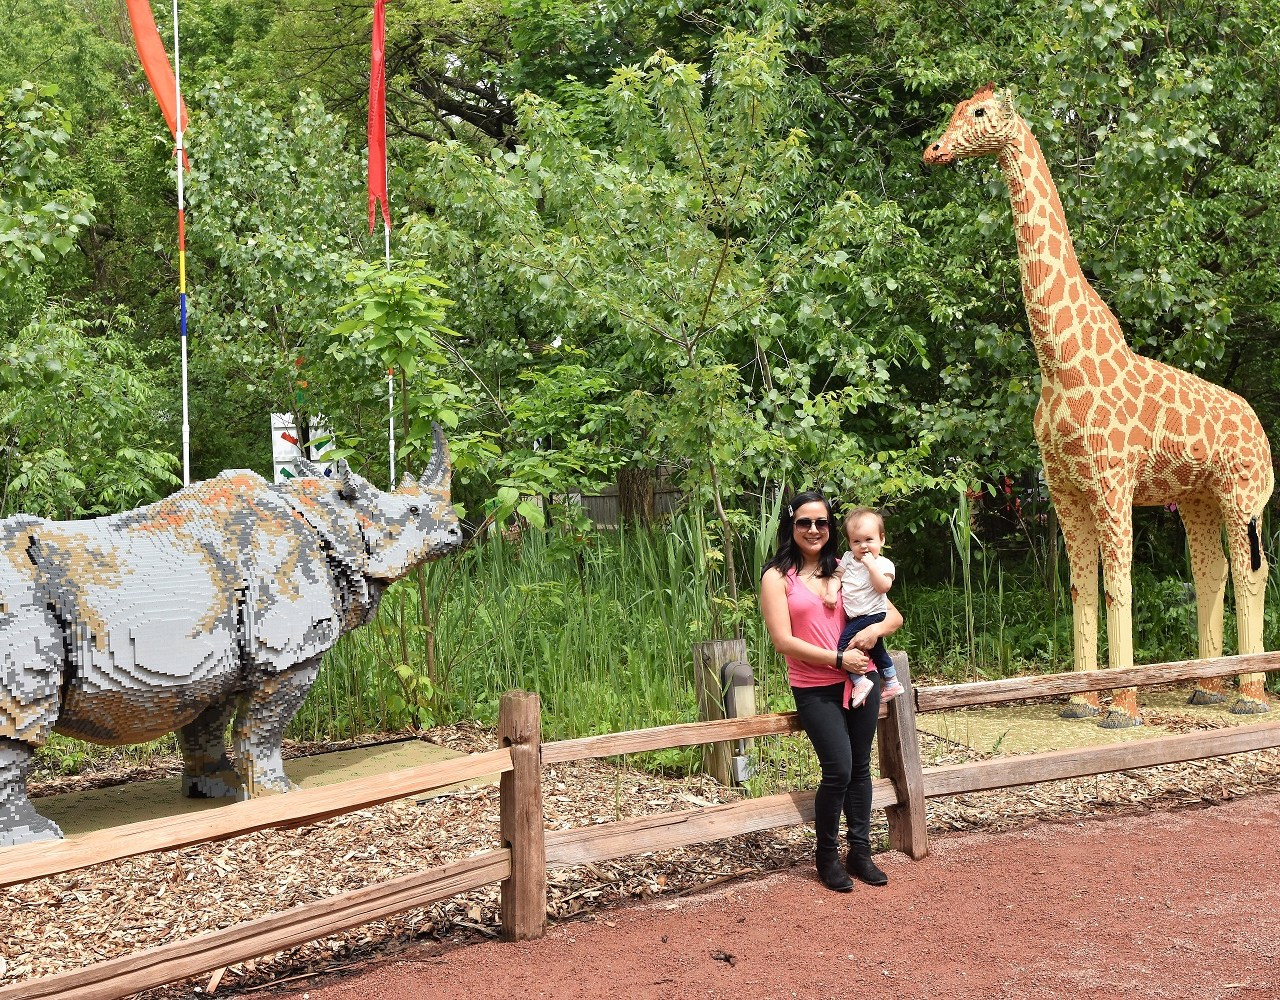 Checking out the Brick Safari at Brookfield Zoo